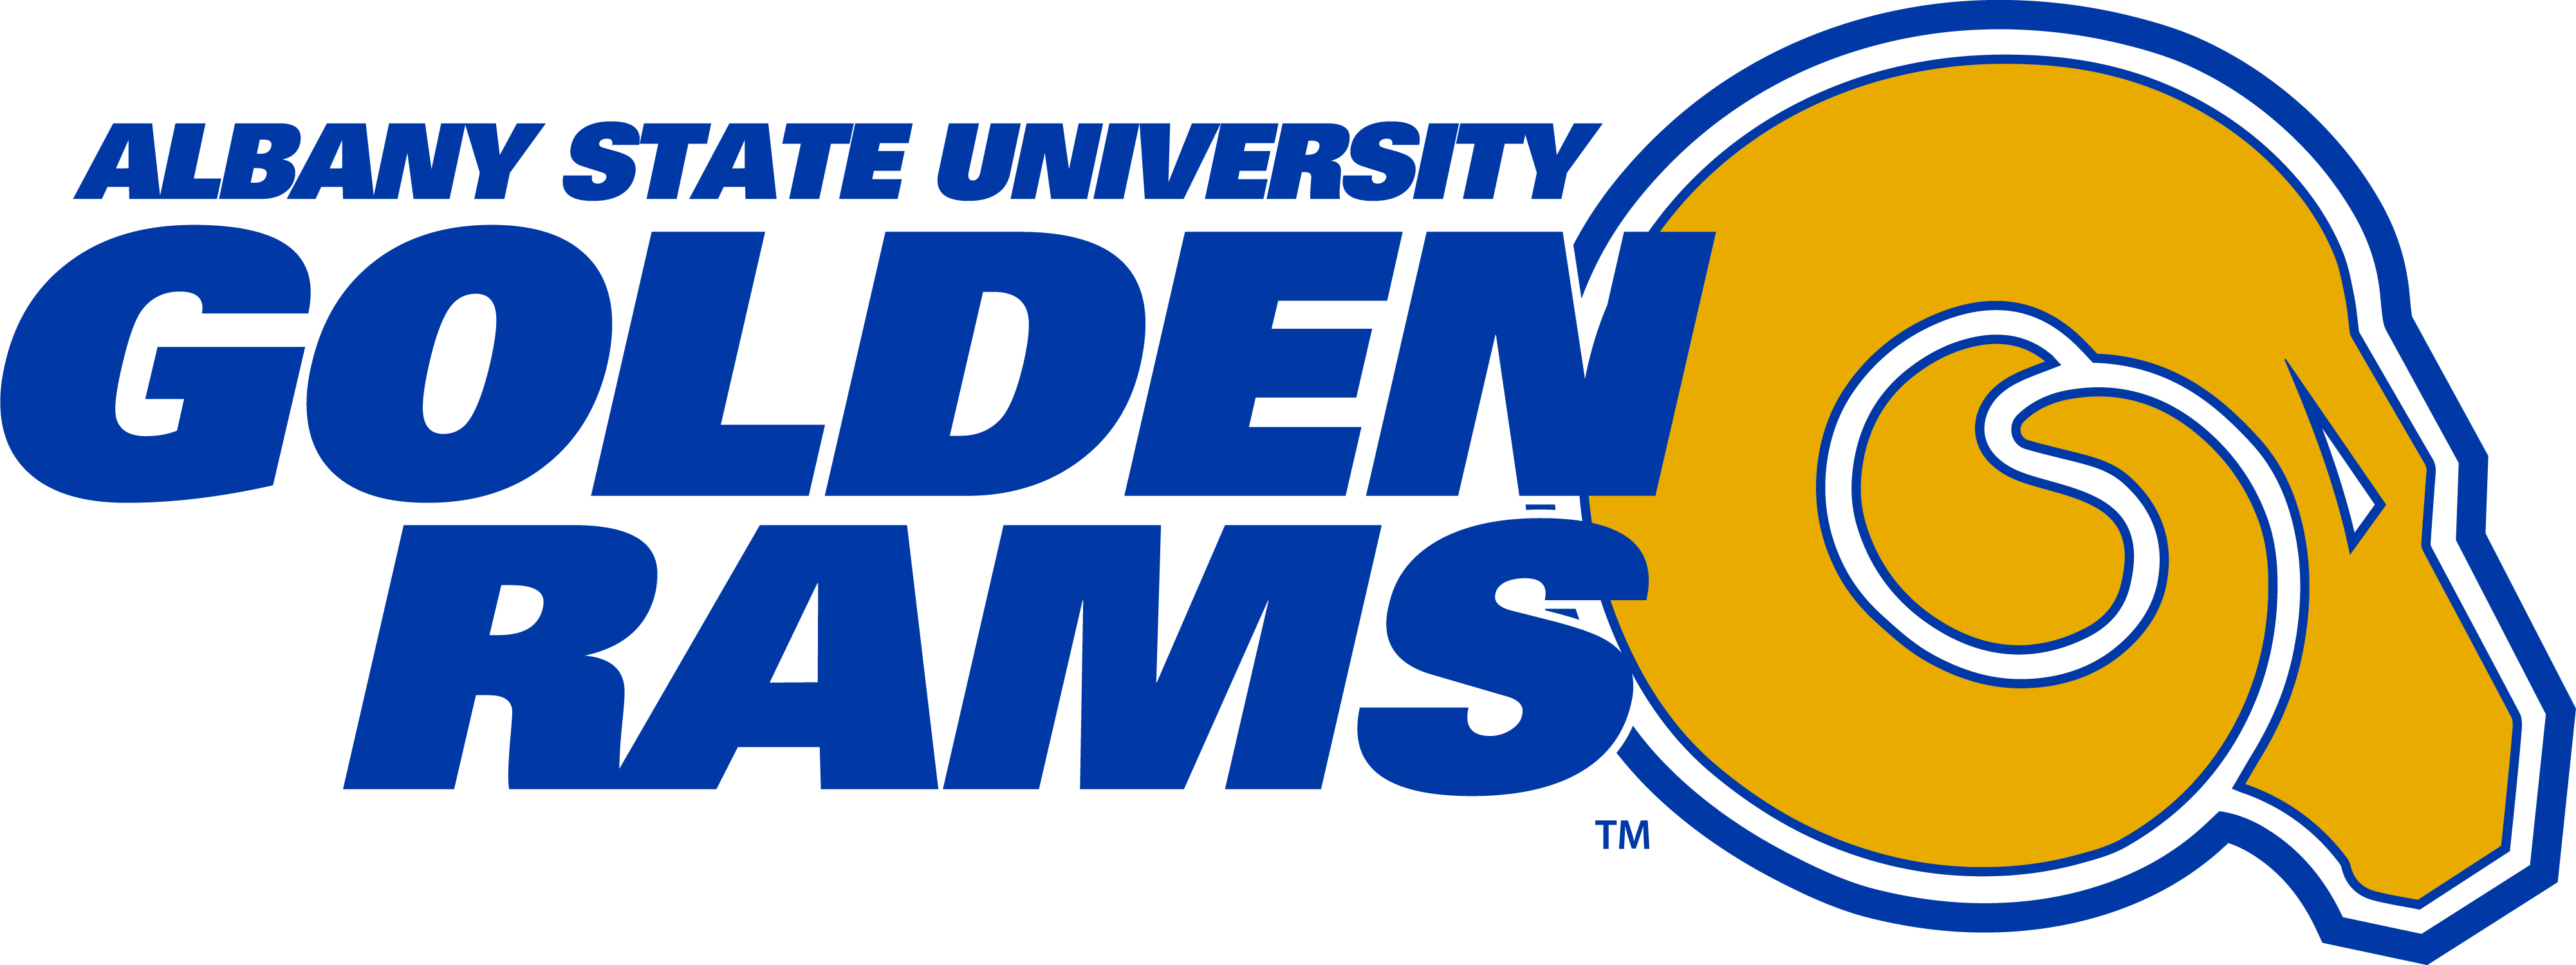 Albany State University |Athletics Ticketing